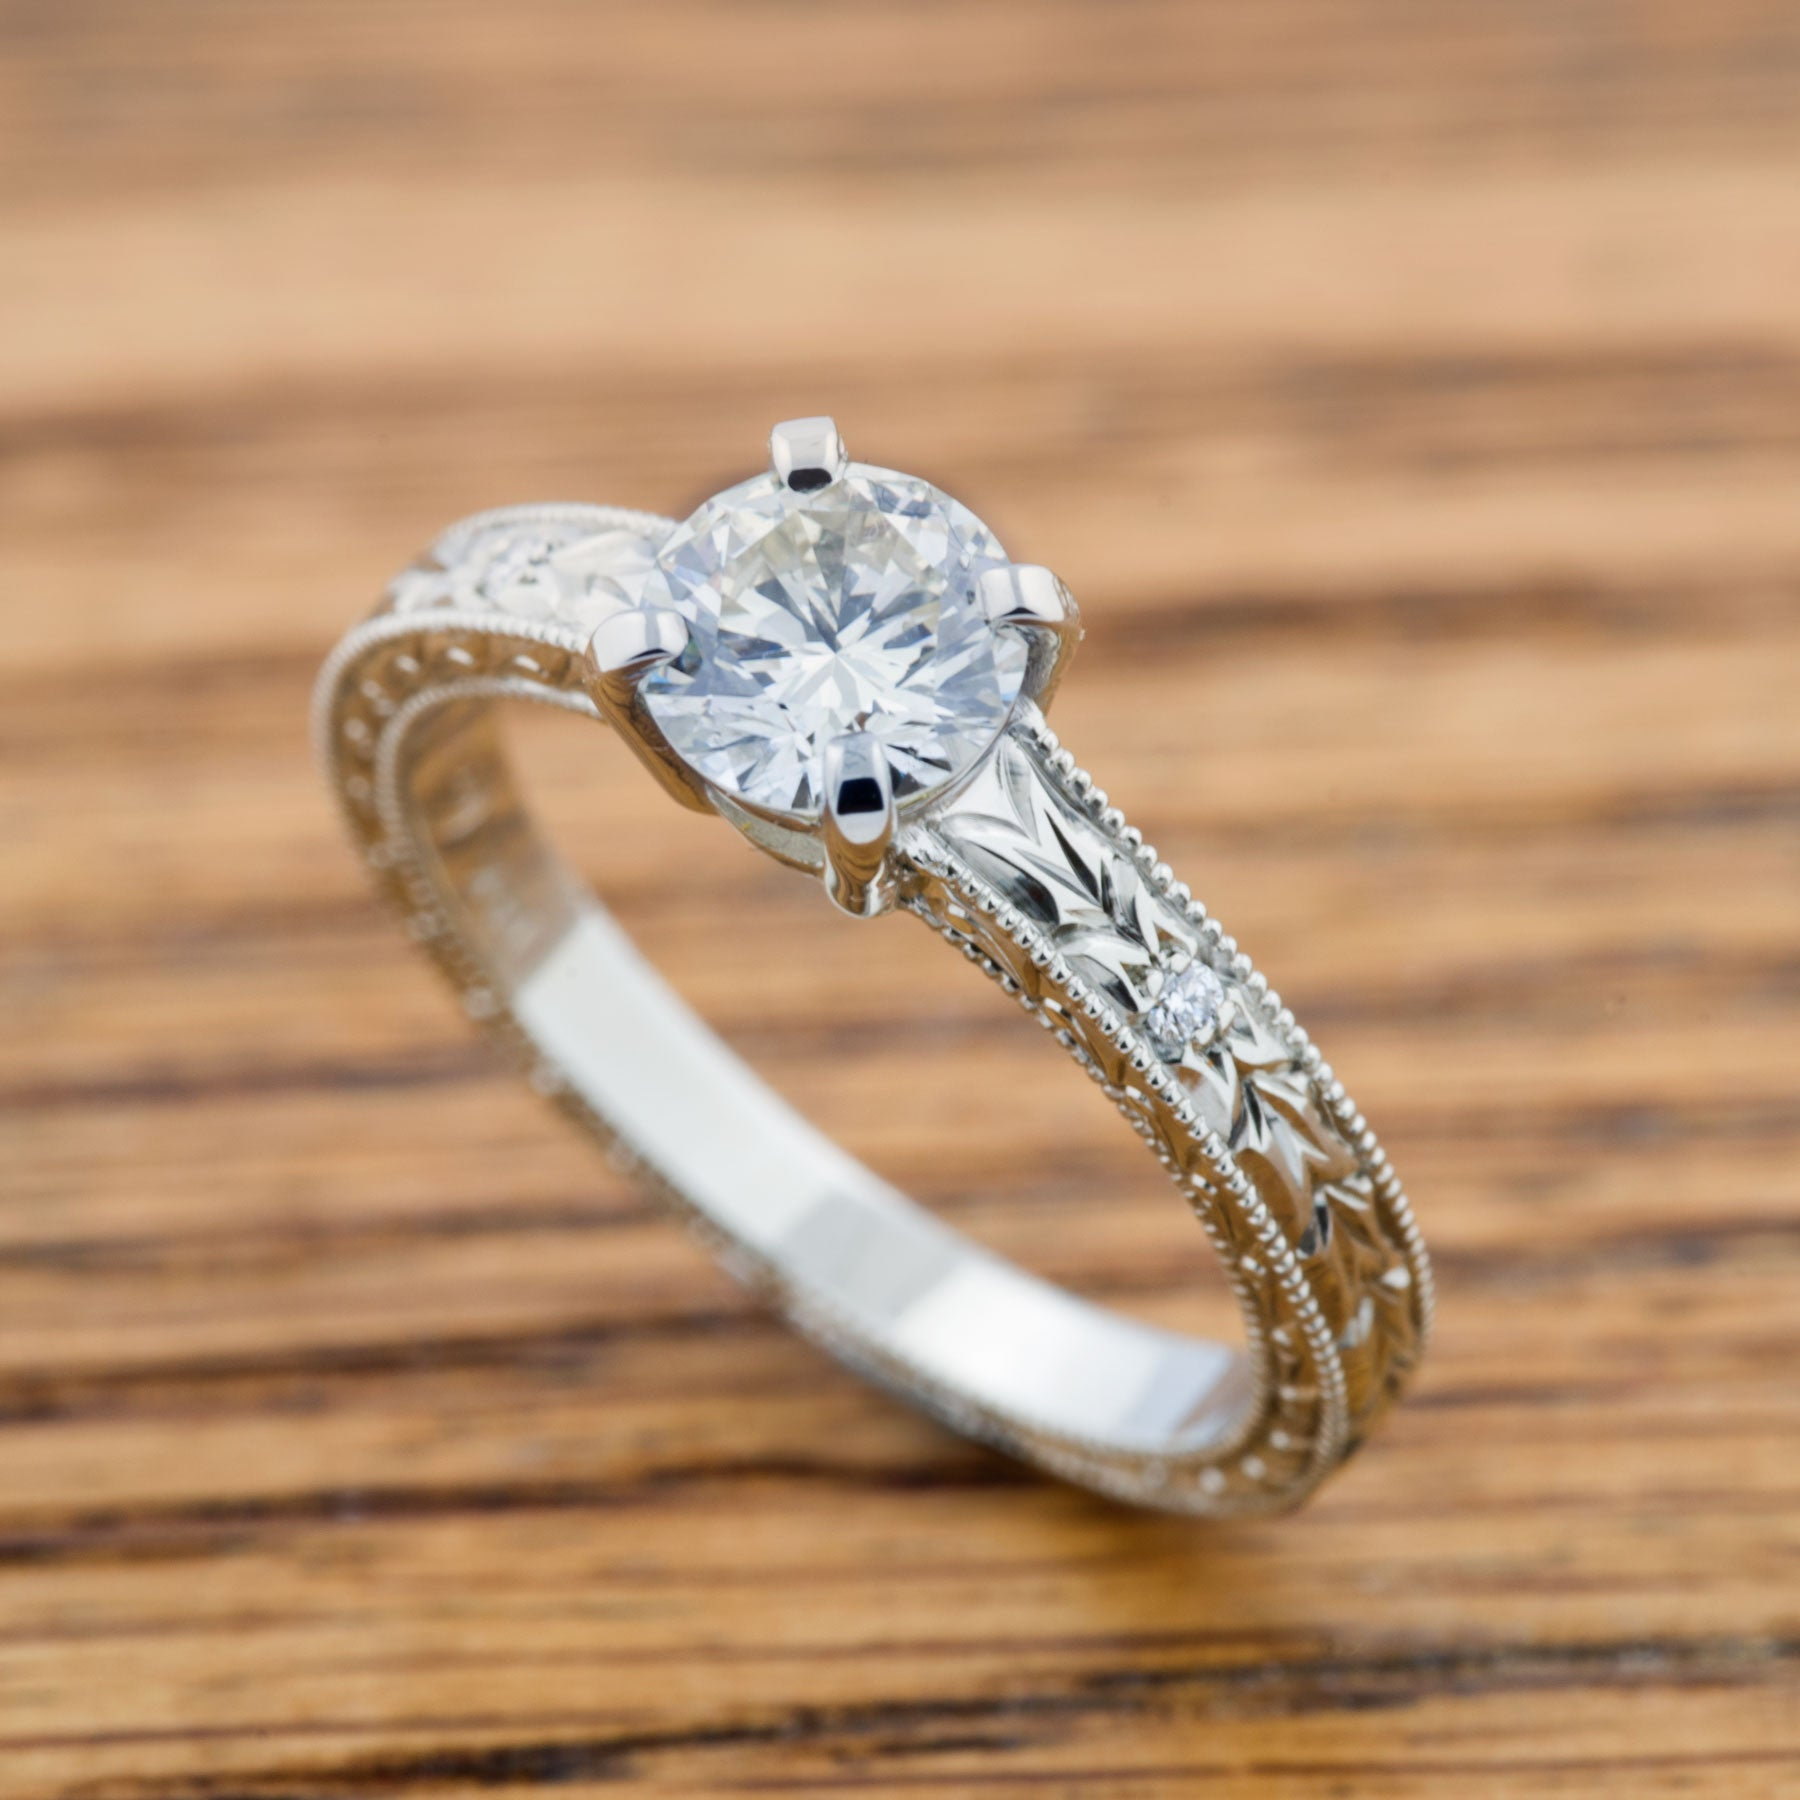 Annika Large Engraved Diamond Wedding Band - Era Design Vancouver